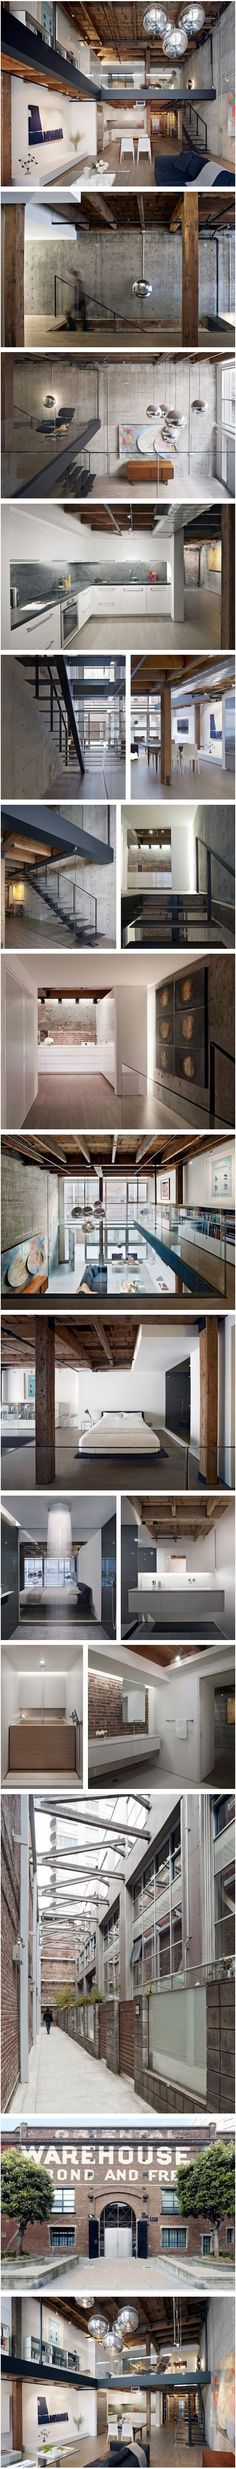 Amazing open-plan loft apartment in this renovated warehouse. #dreamhomeoftheday